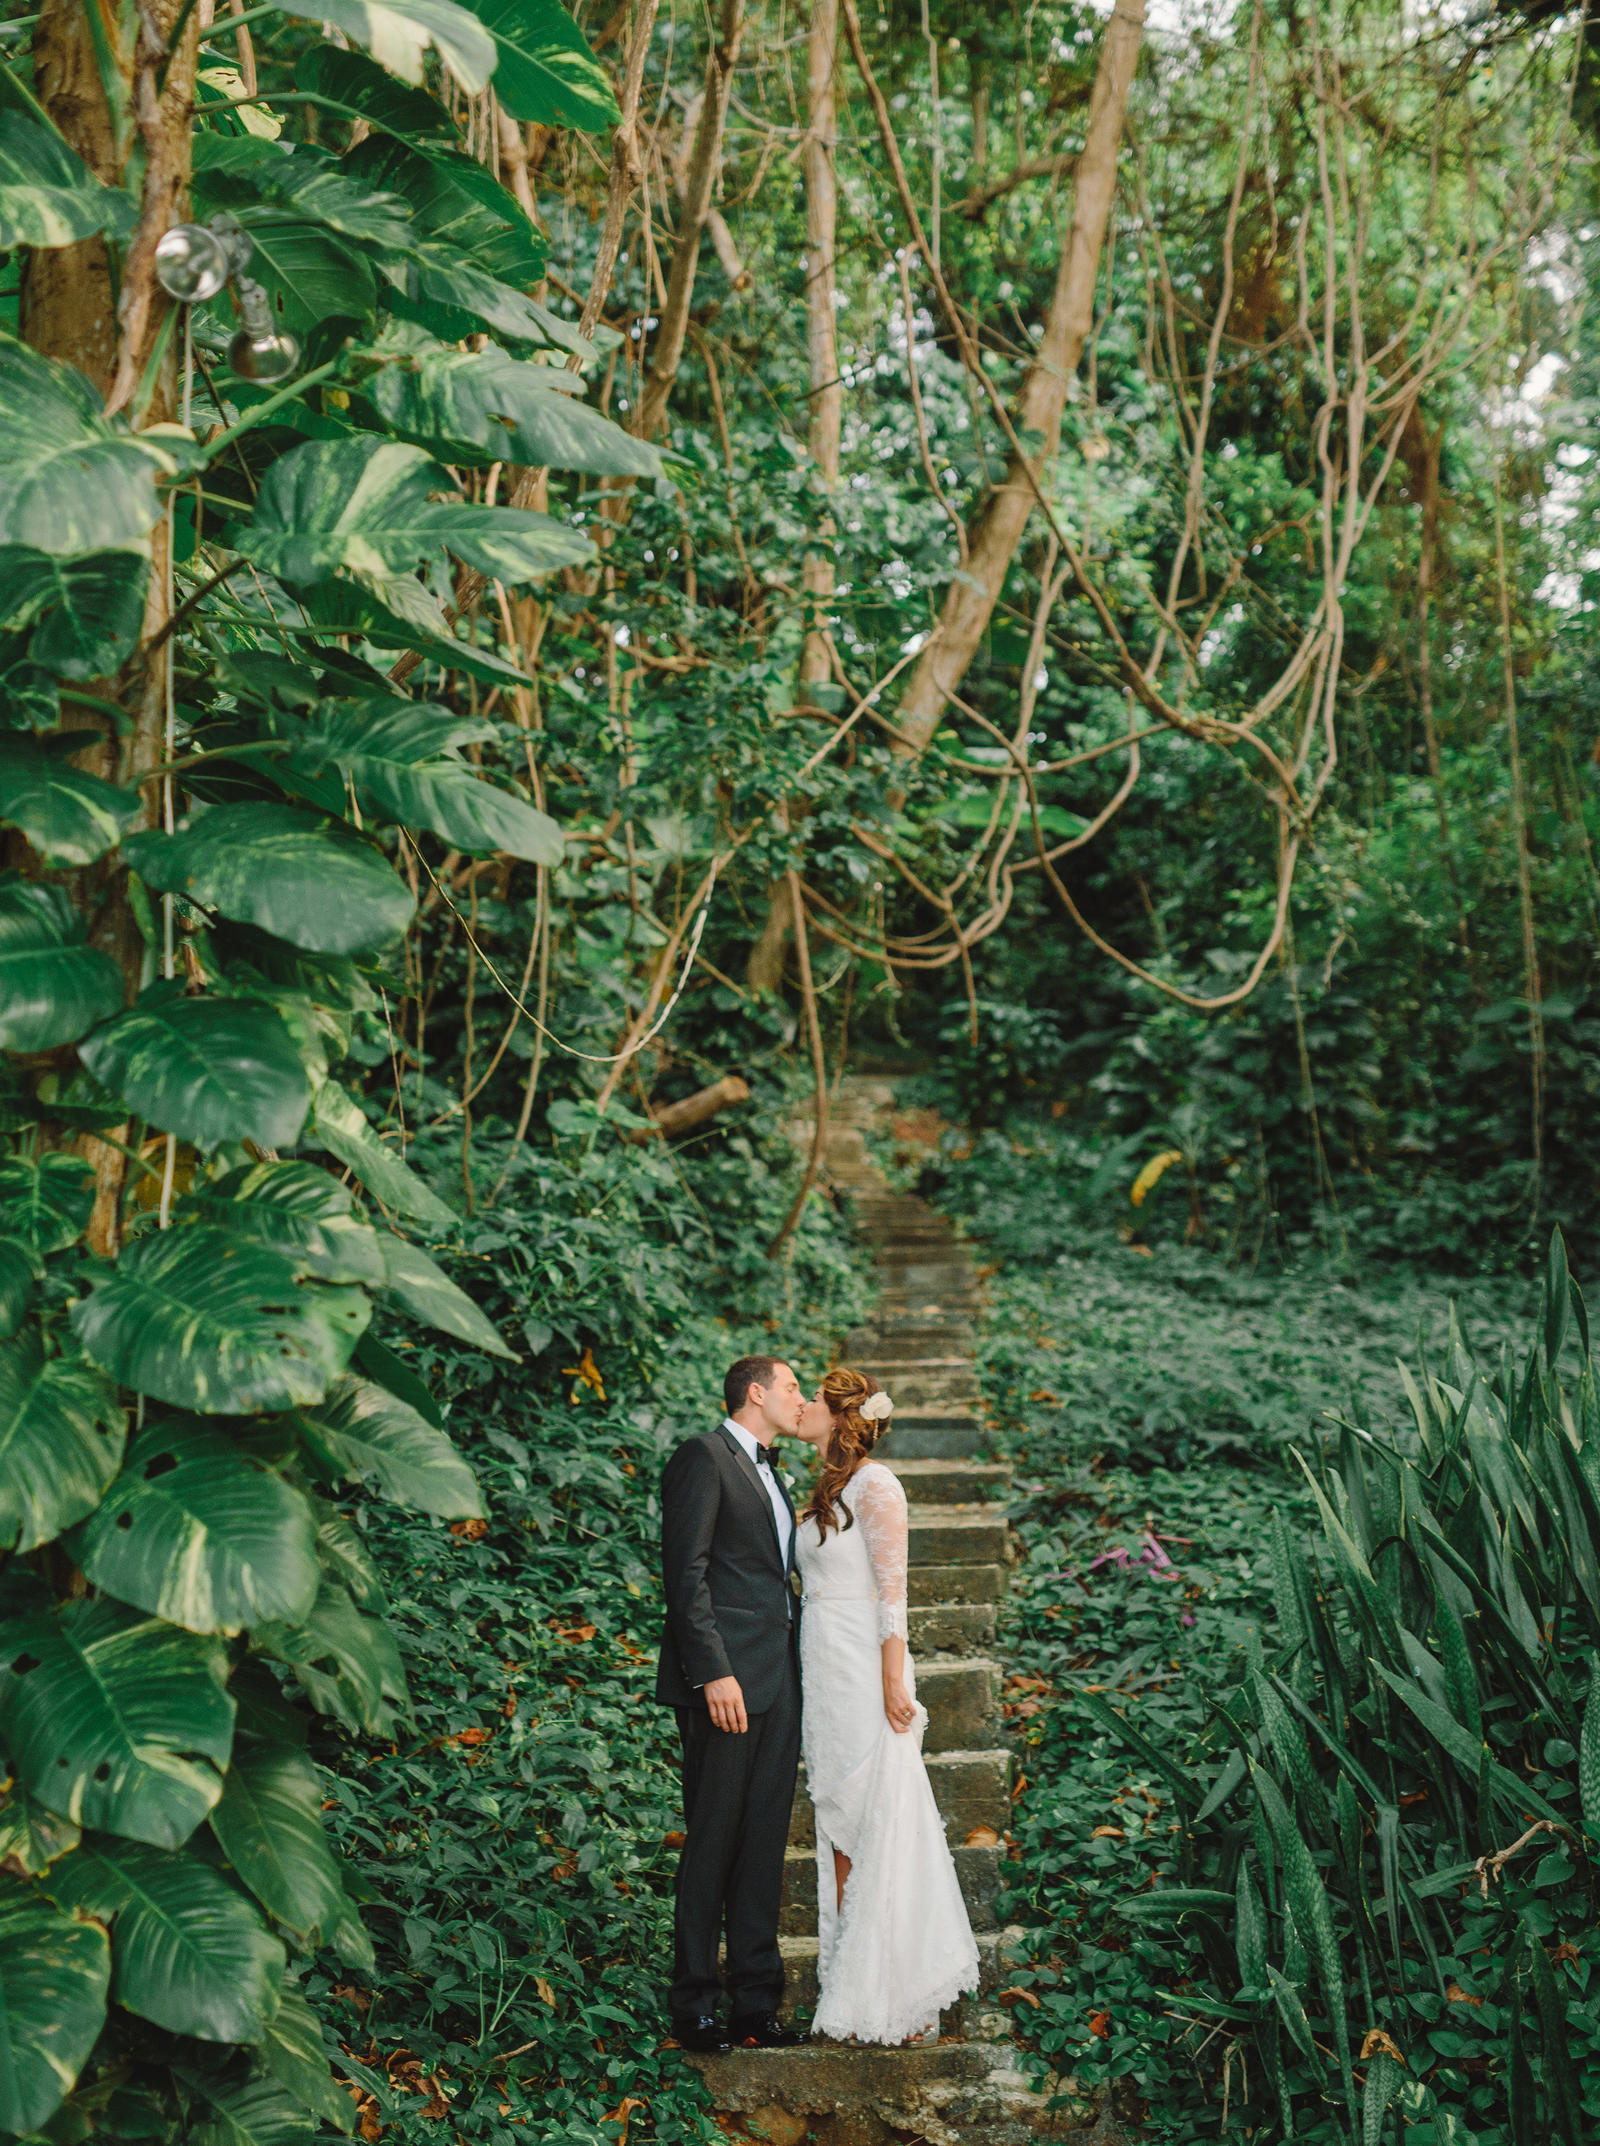 Wedding Photography | A bride and groom, kissing, on a stairway in a garden.